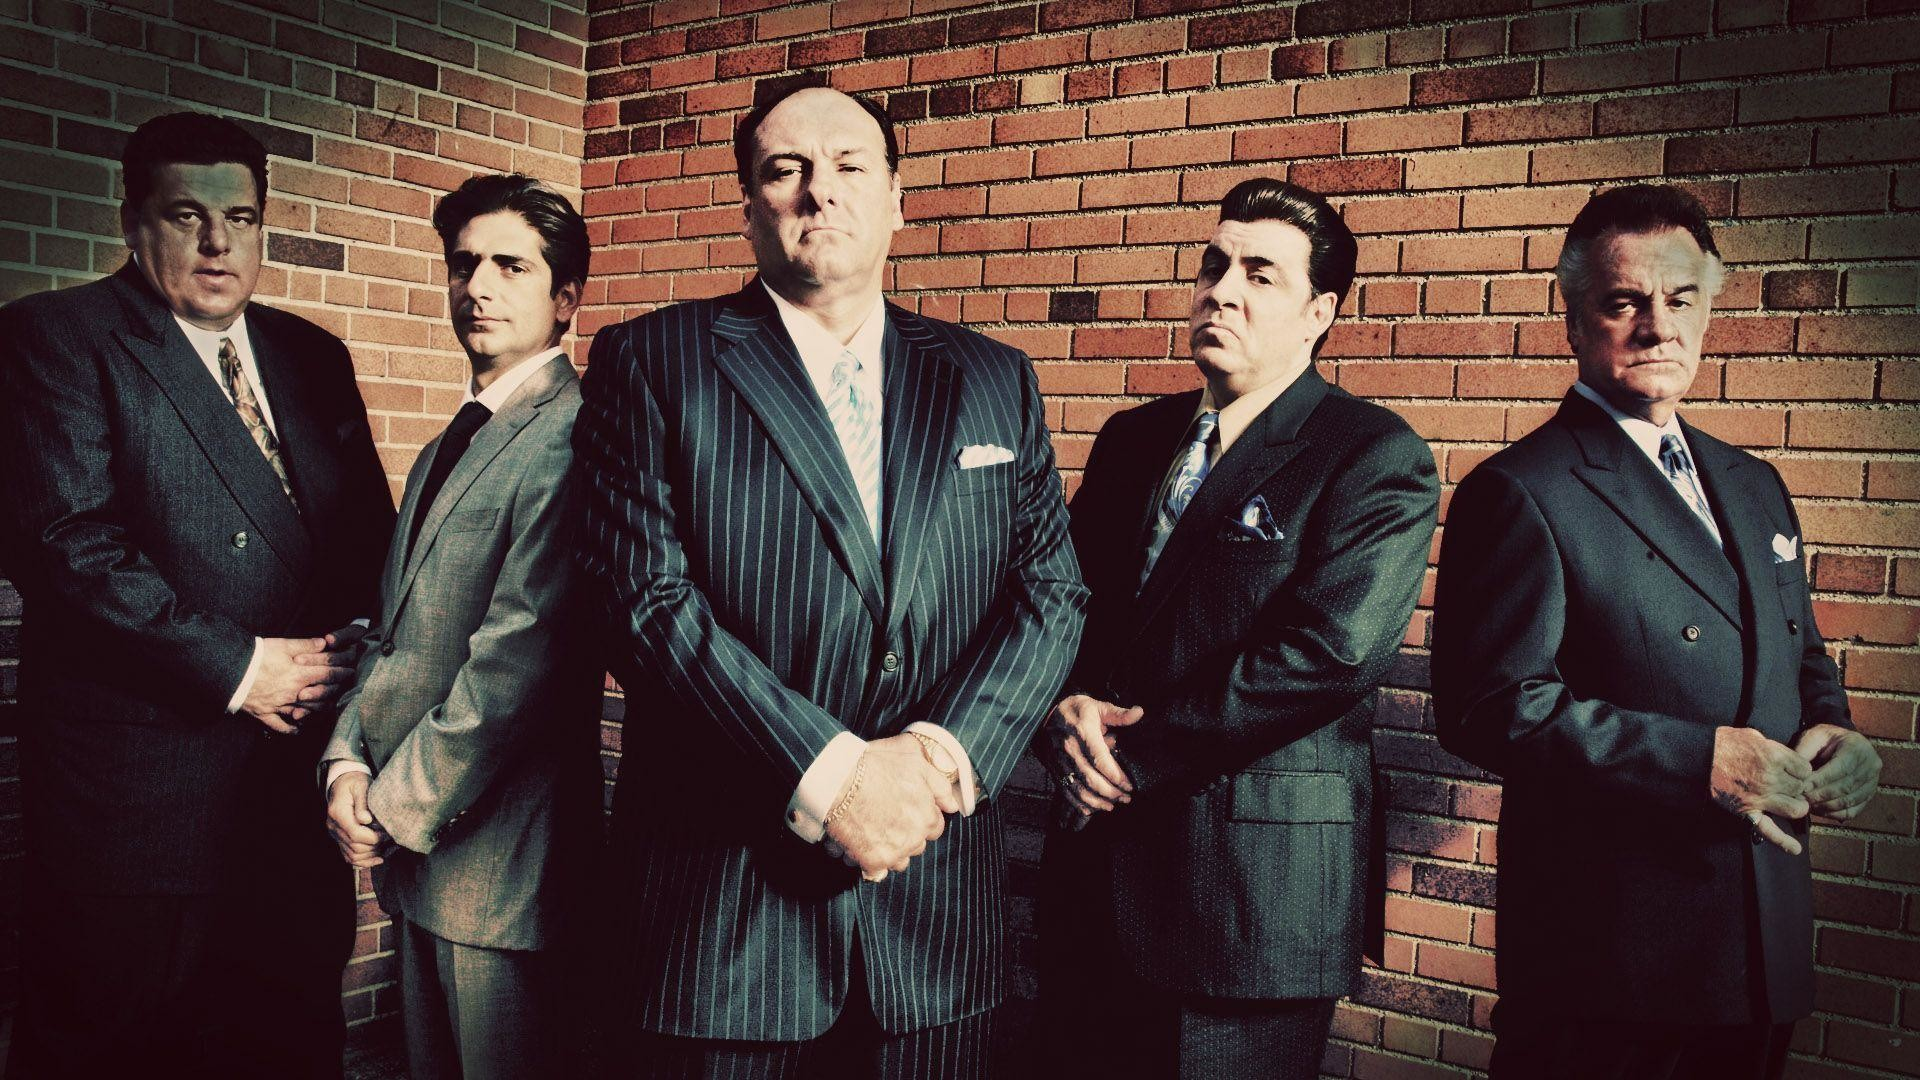 Res: 1920x1080, The Sopranos wallpaper 12